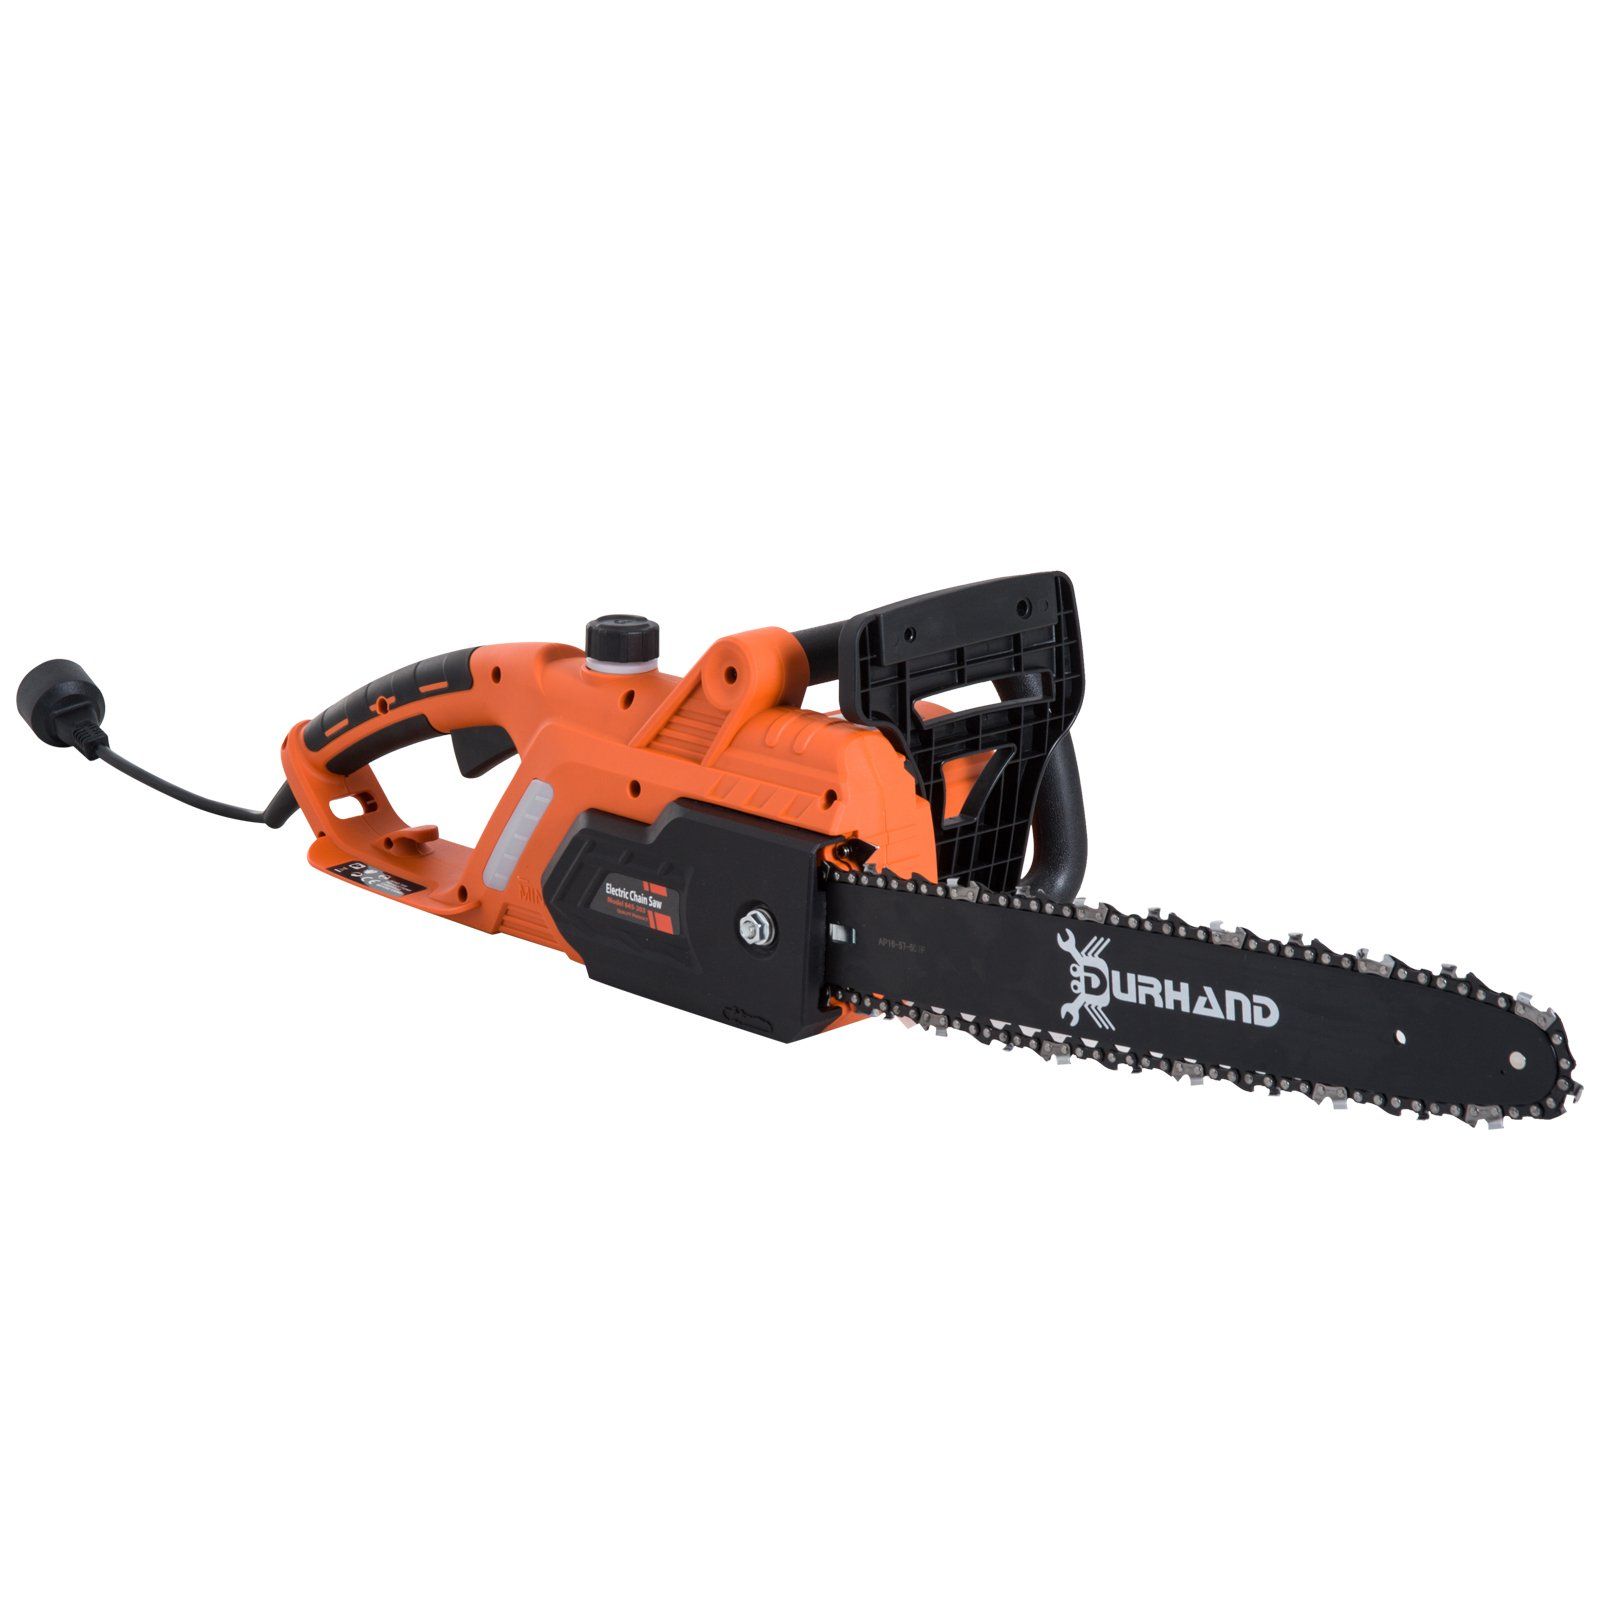 DURHAND 16'' 13-Amp Adjustable Tension Corded Electric Chainsaw - Orange